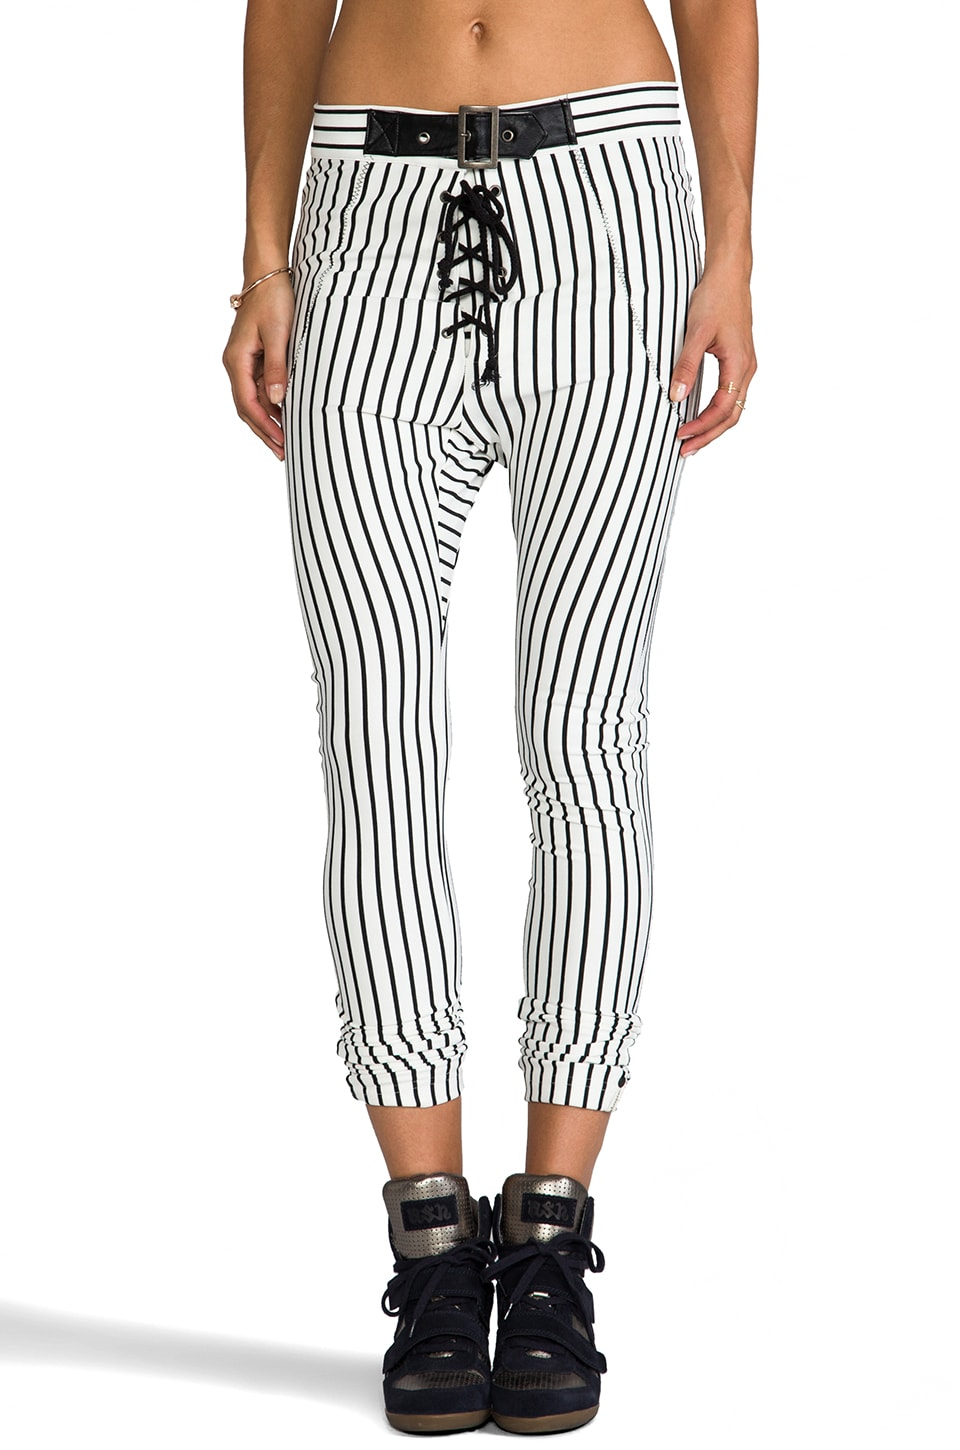 One Teaspoon Babylon Jagger Pant in White/Black